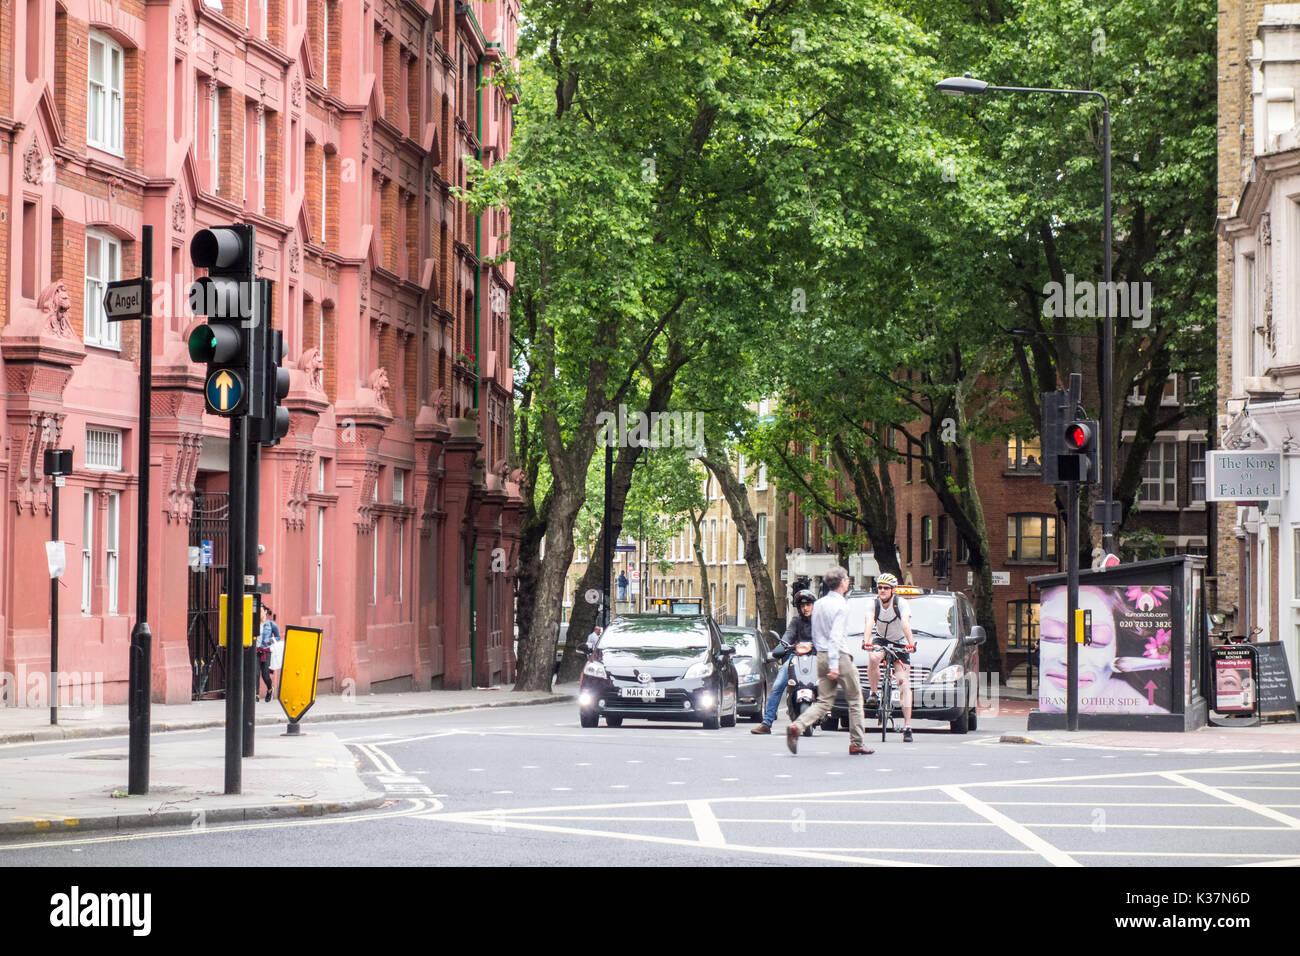 View of Grays Inn Buildings and trees on Rosebery Avenue from Clerkenwell Road, London, UK - Stock Image